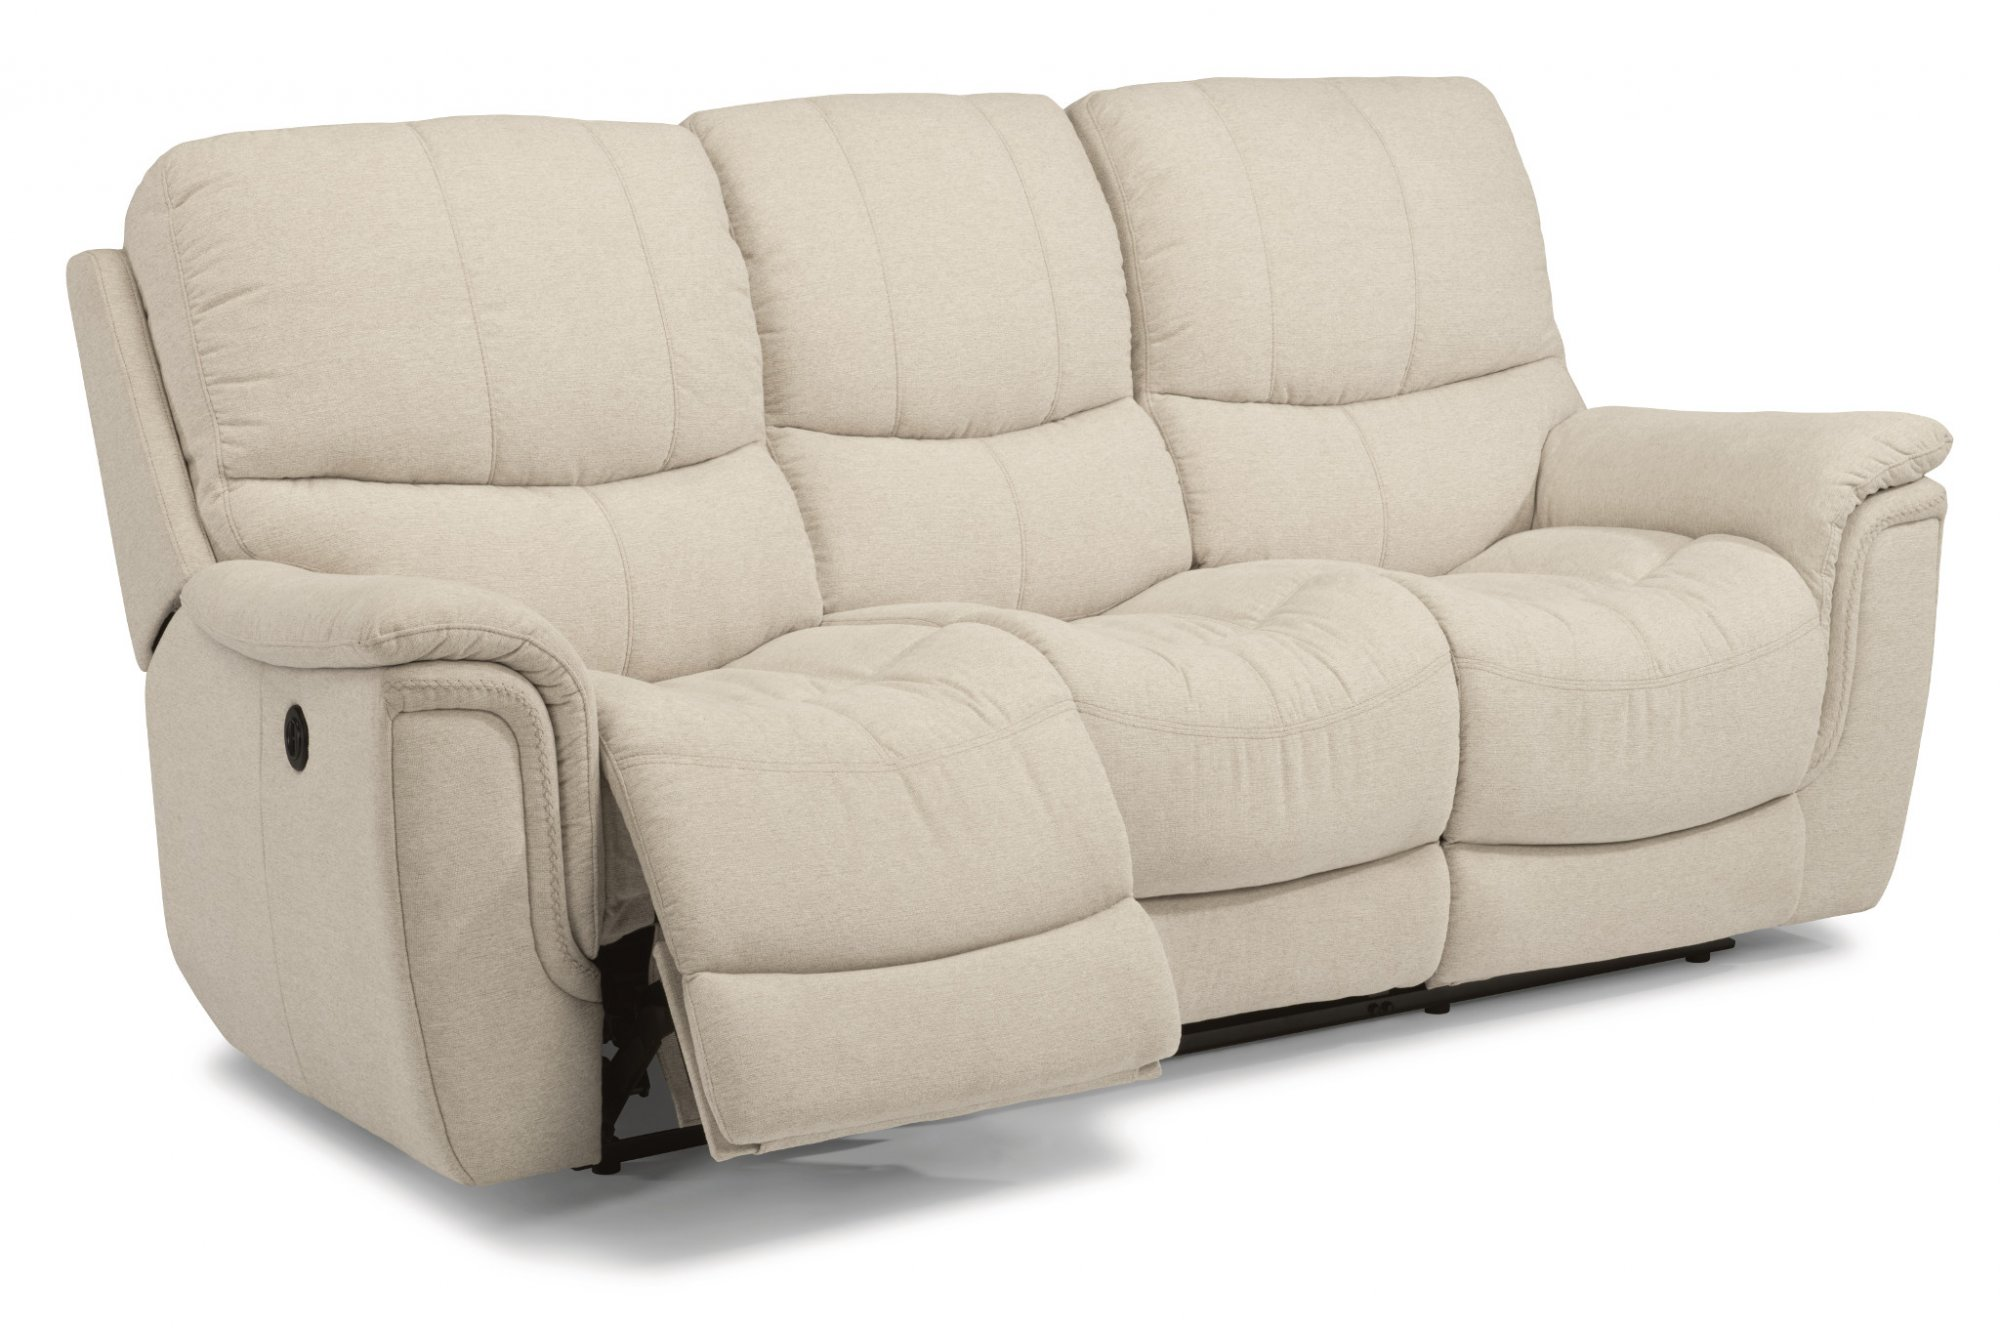 Fabric Power Reclining Sofa  sc 1 st  Flexsteel & Reclining Chairs \u0026 Sofas | Reclining Furniture from Flexsteel islam-shia.org